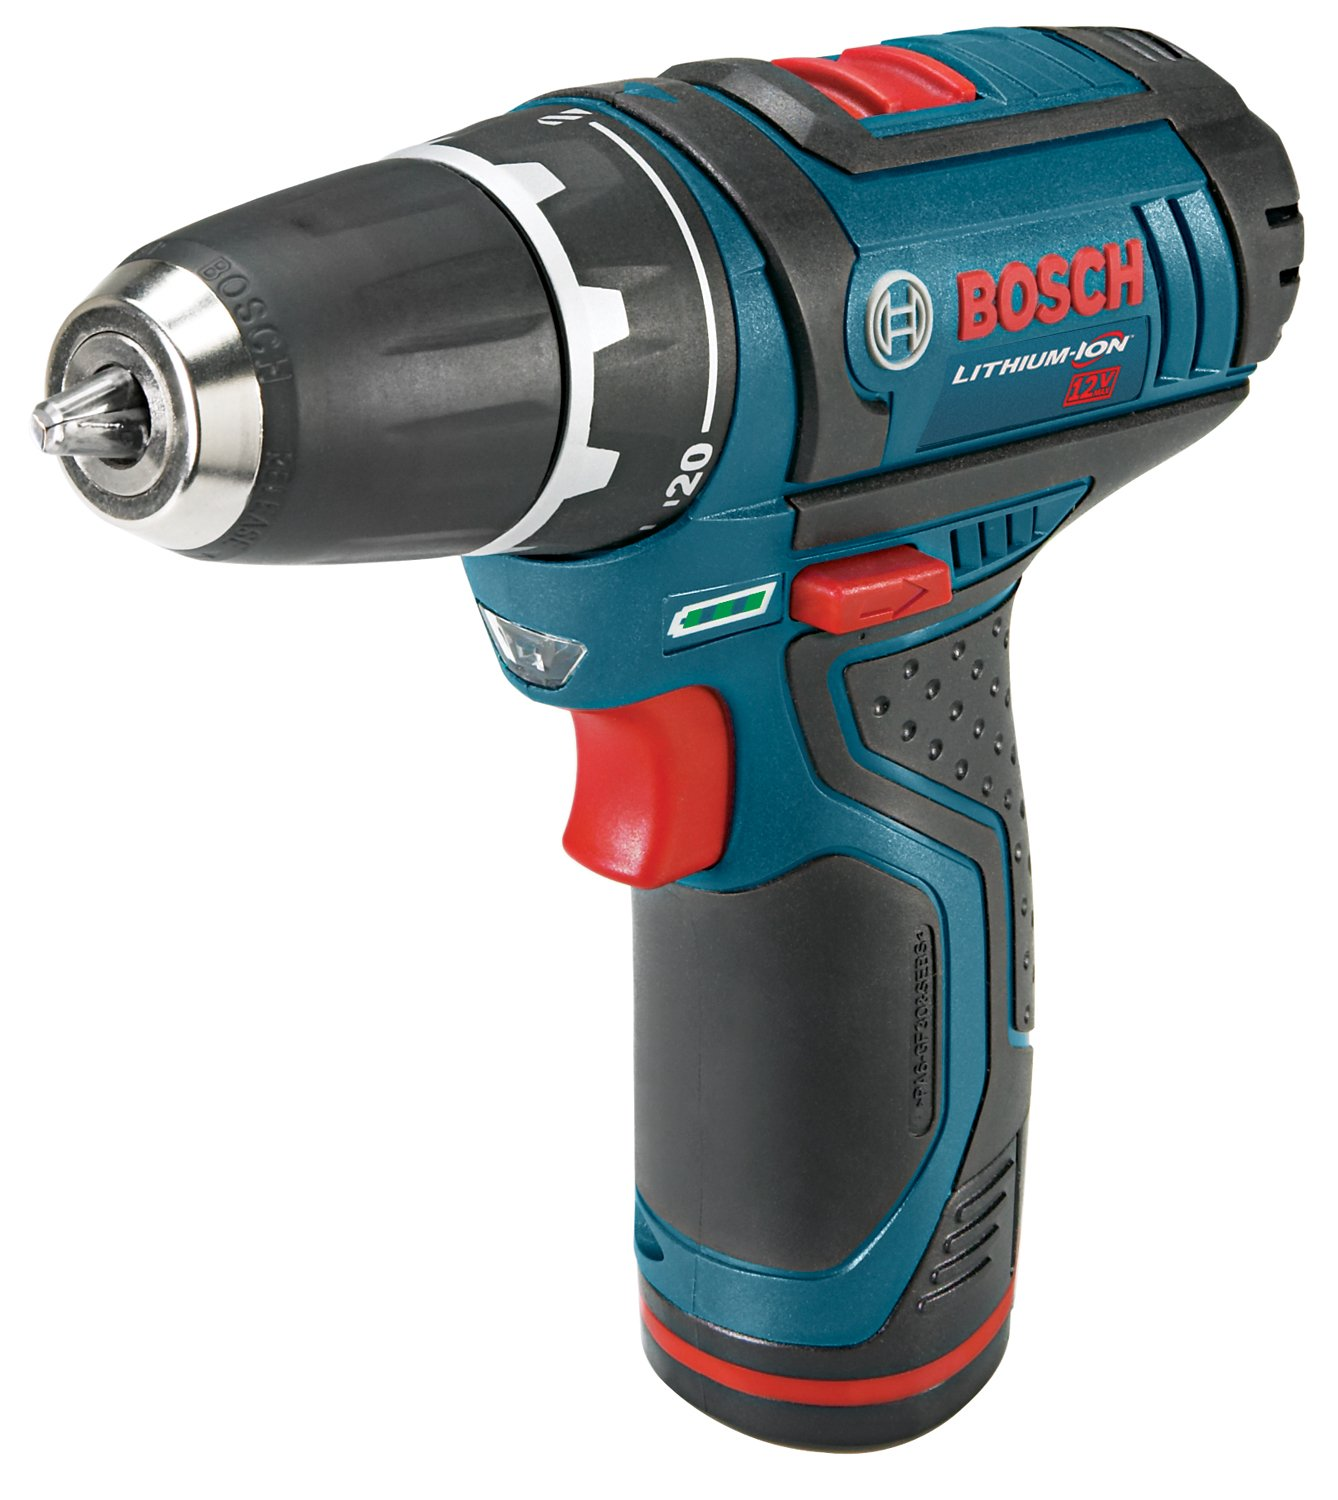 Bosch PS31-2A 12-Volt Max Lithium-Ion 3/8-Inch 2-Speed Drill/Driver Kit with 2 Batteries, Charger and Case by Bosch